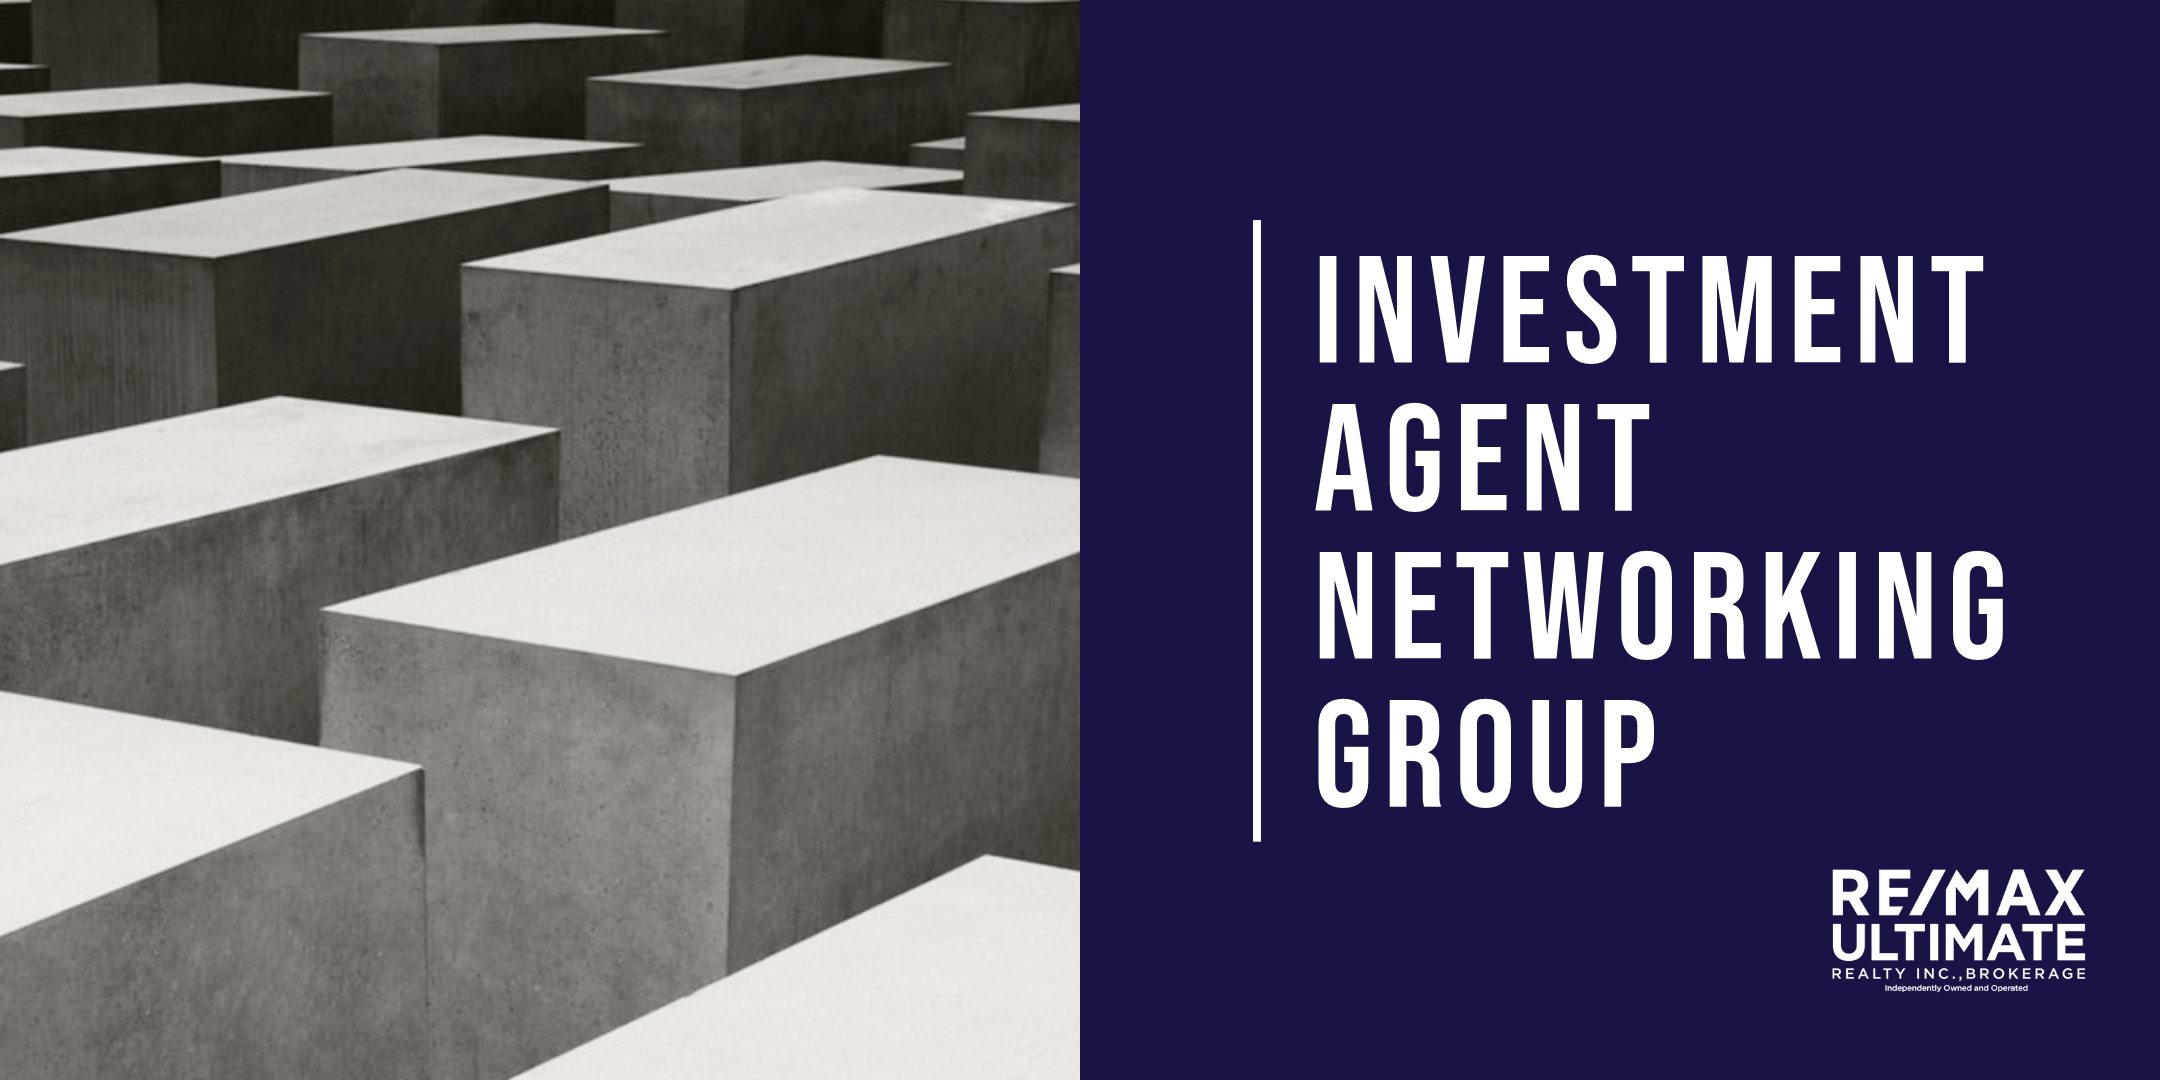 Investment Agent Networking Group